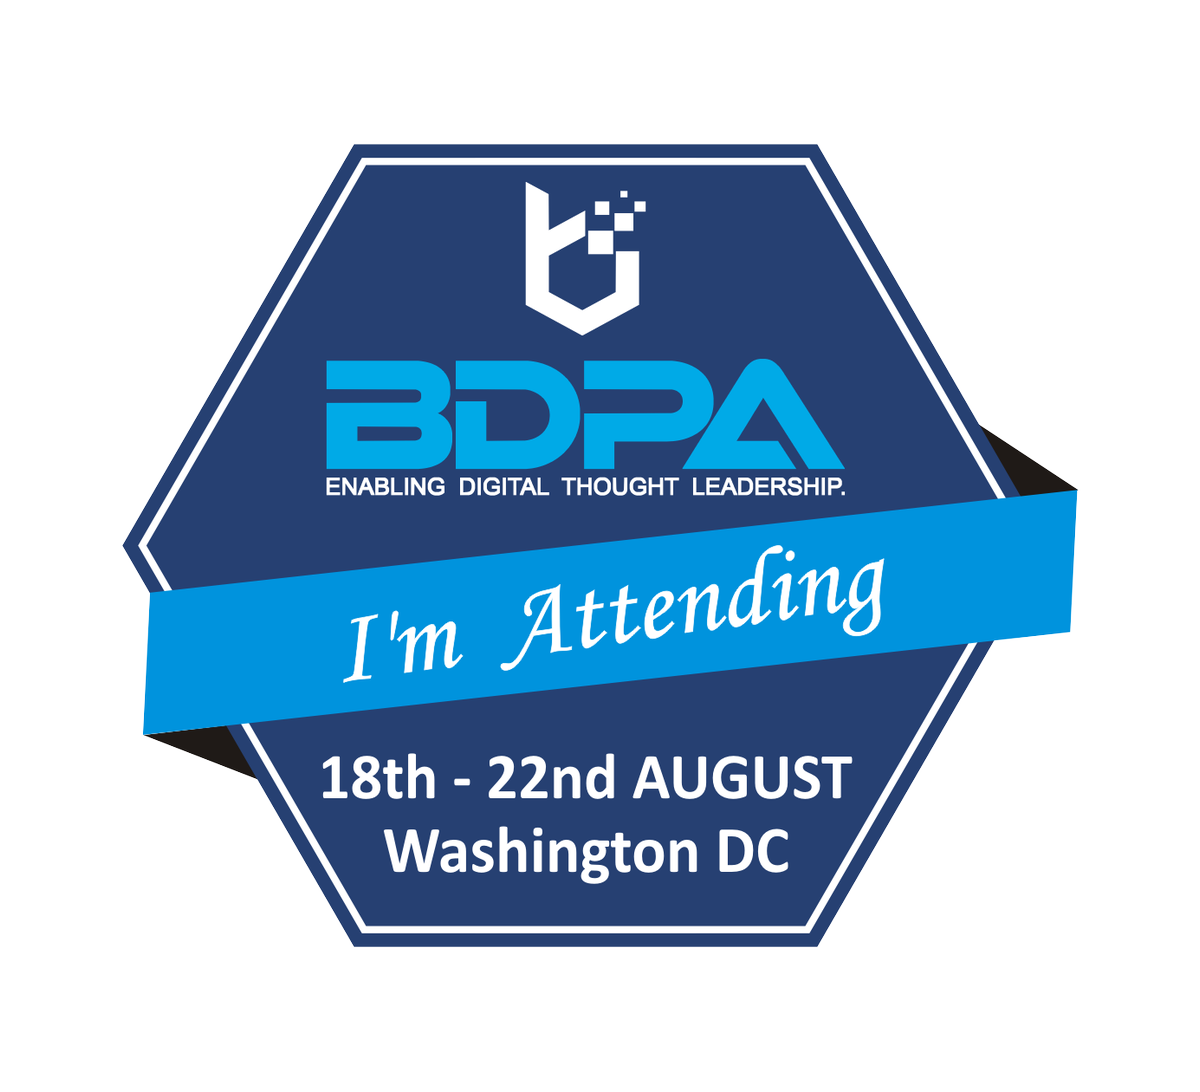 Safe Travels! Looking forward to a full agenda & week long celebration! #BDPACON15 @BDPA 40th Anniversay #BDPACONNECT http://t.co/KI3wYOrYYj